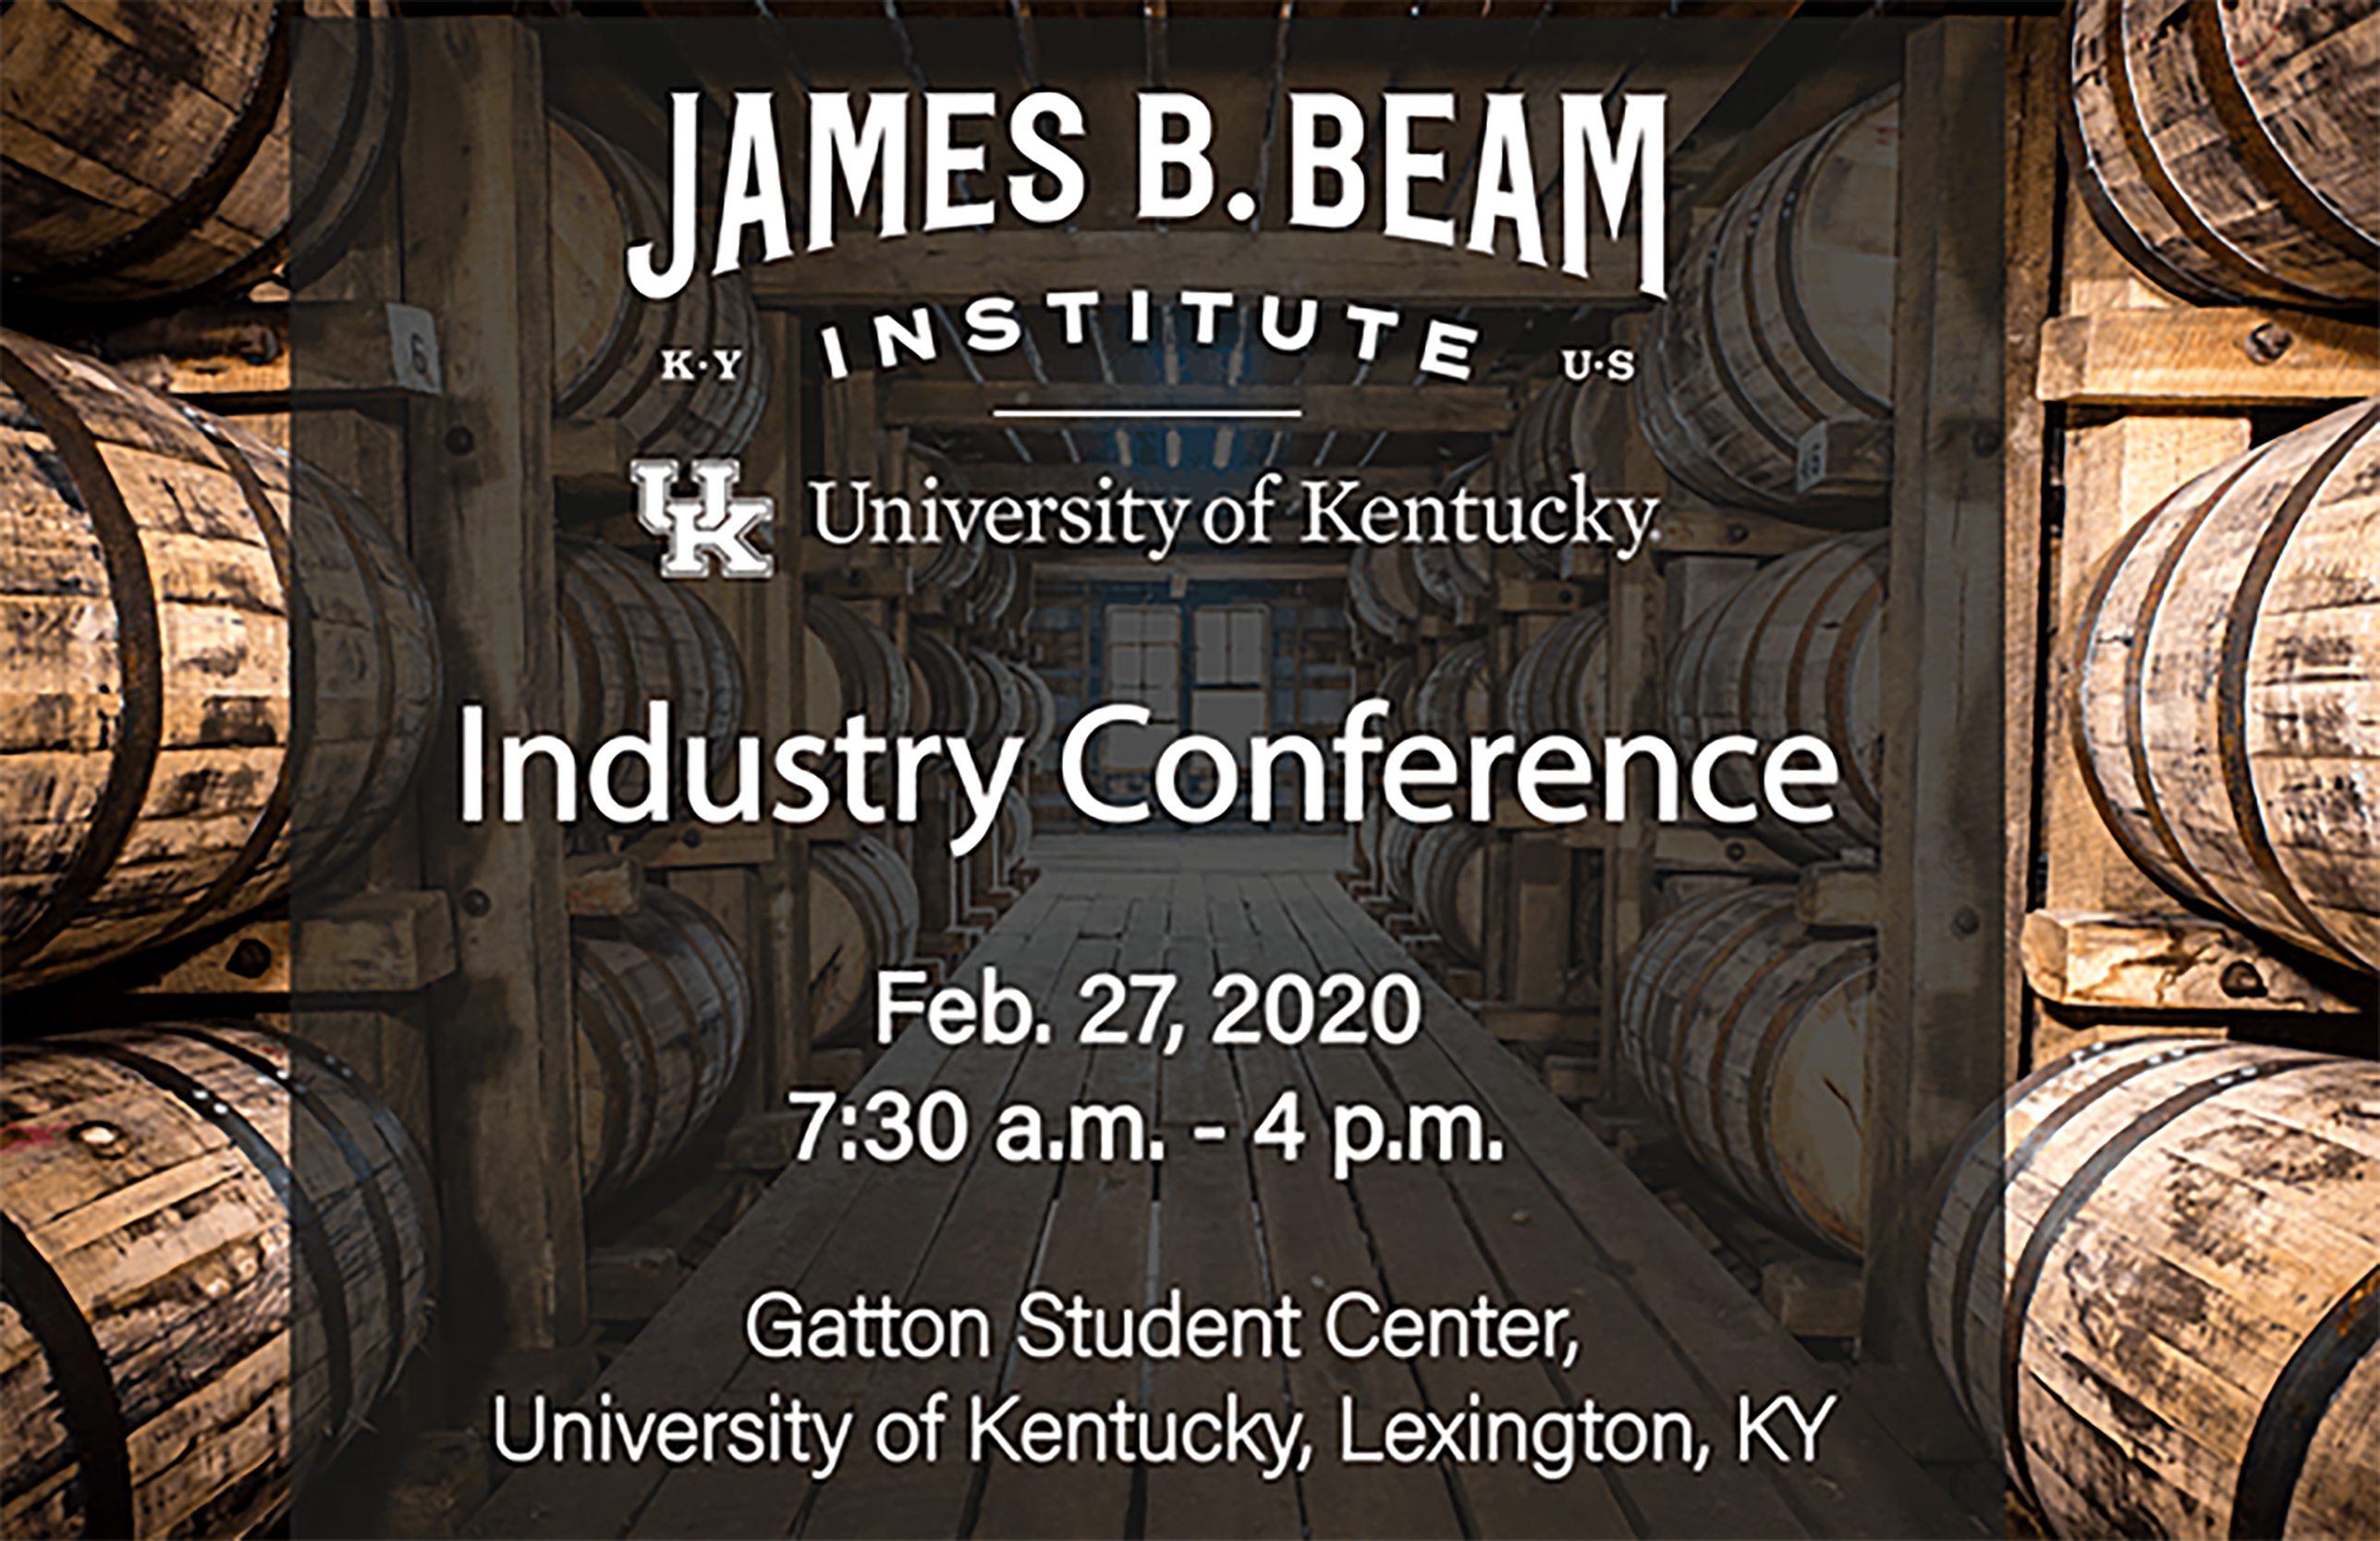 Inaugural James B. Beam Institute Industry Conference coming in February